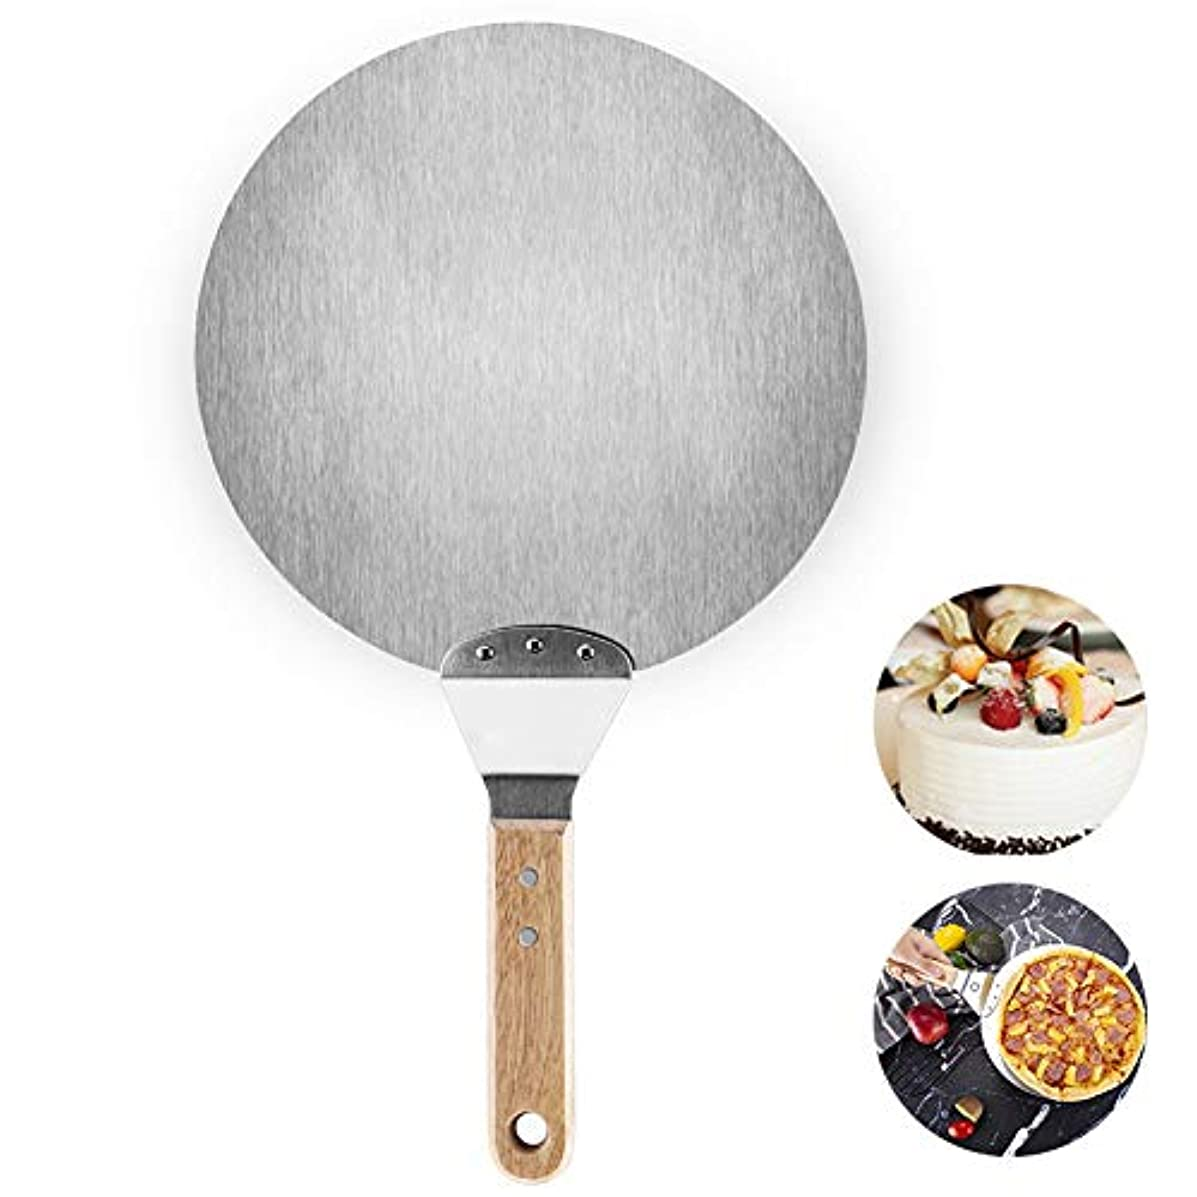 Stainless Steel Pizza Spatula,10 Inch Round Metal Pizza Peel Paddle Shovel Turner Cake Lifter Plate with Wood Handle for Homemade Pizza, Bread, Cake, Baking Tools Accessories